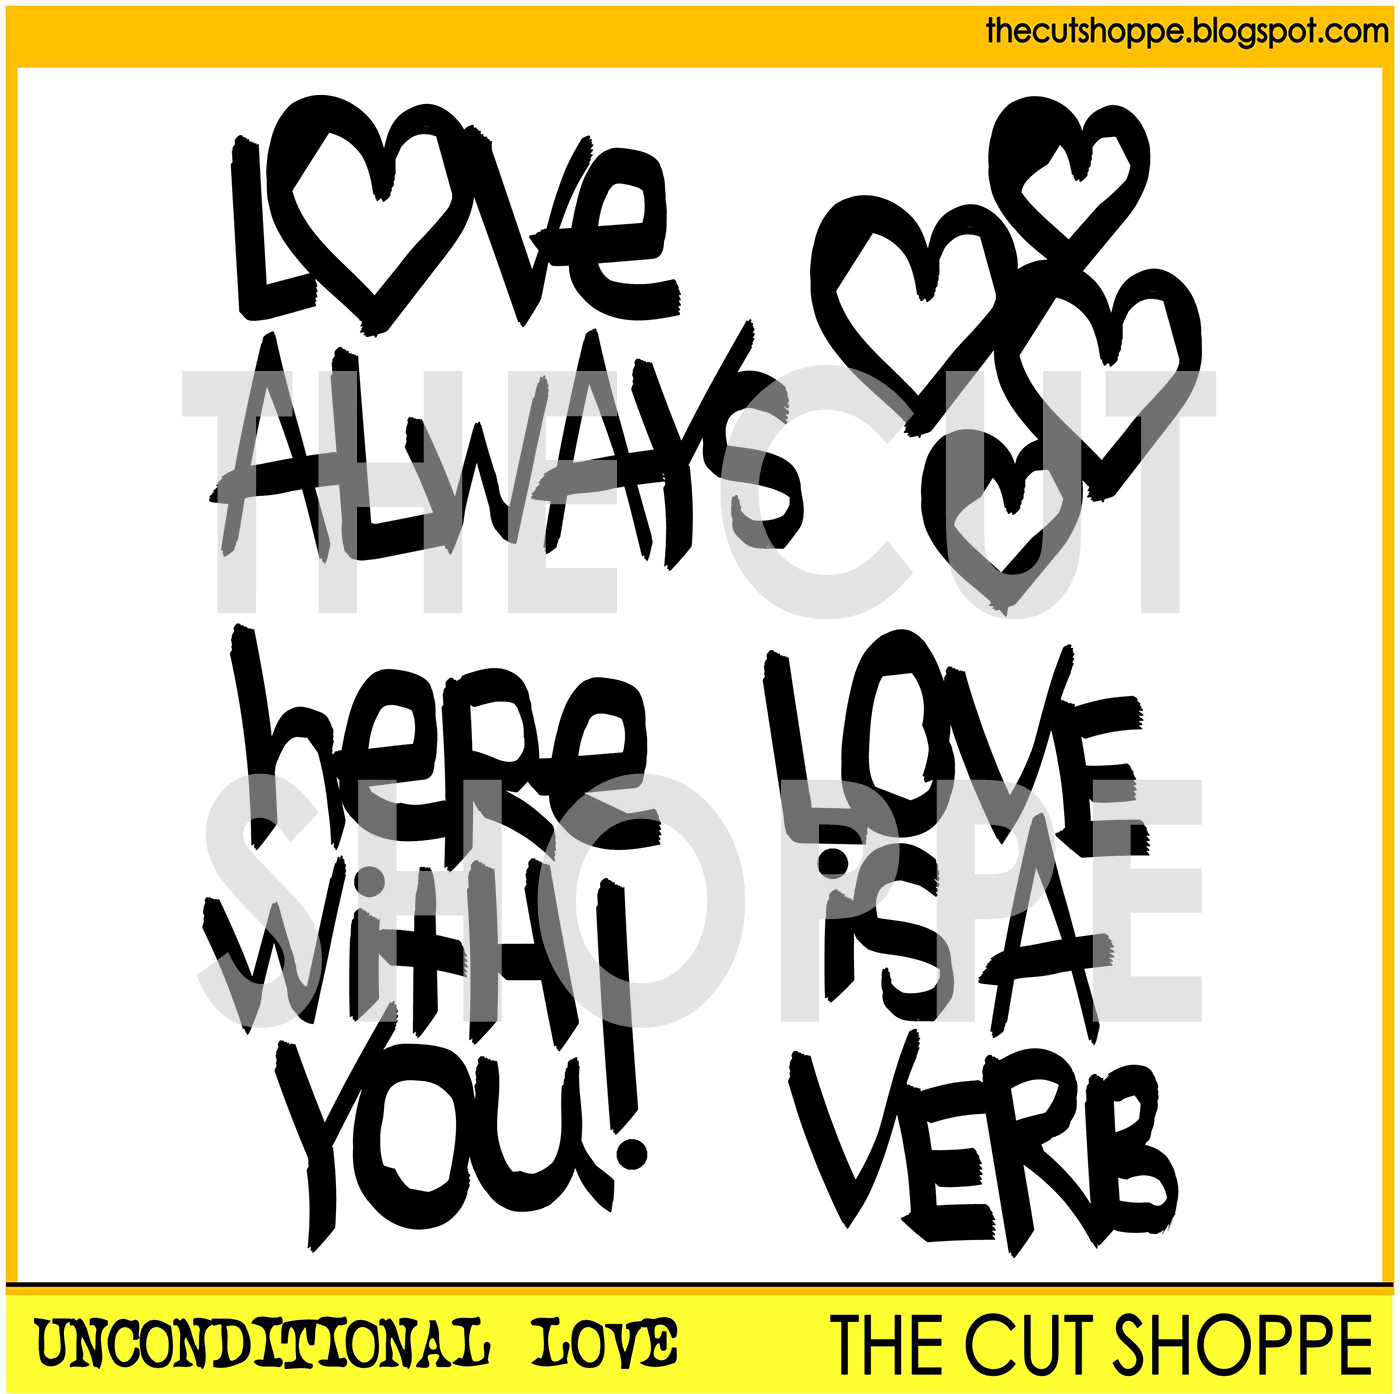 https://www.etsy.com/listing/229206435/the-unconditional-love-cut-file-consists?ref=shop_home_active_2